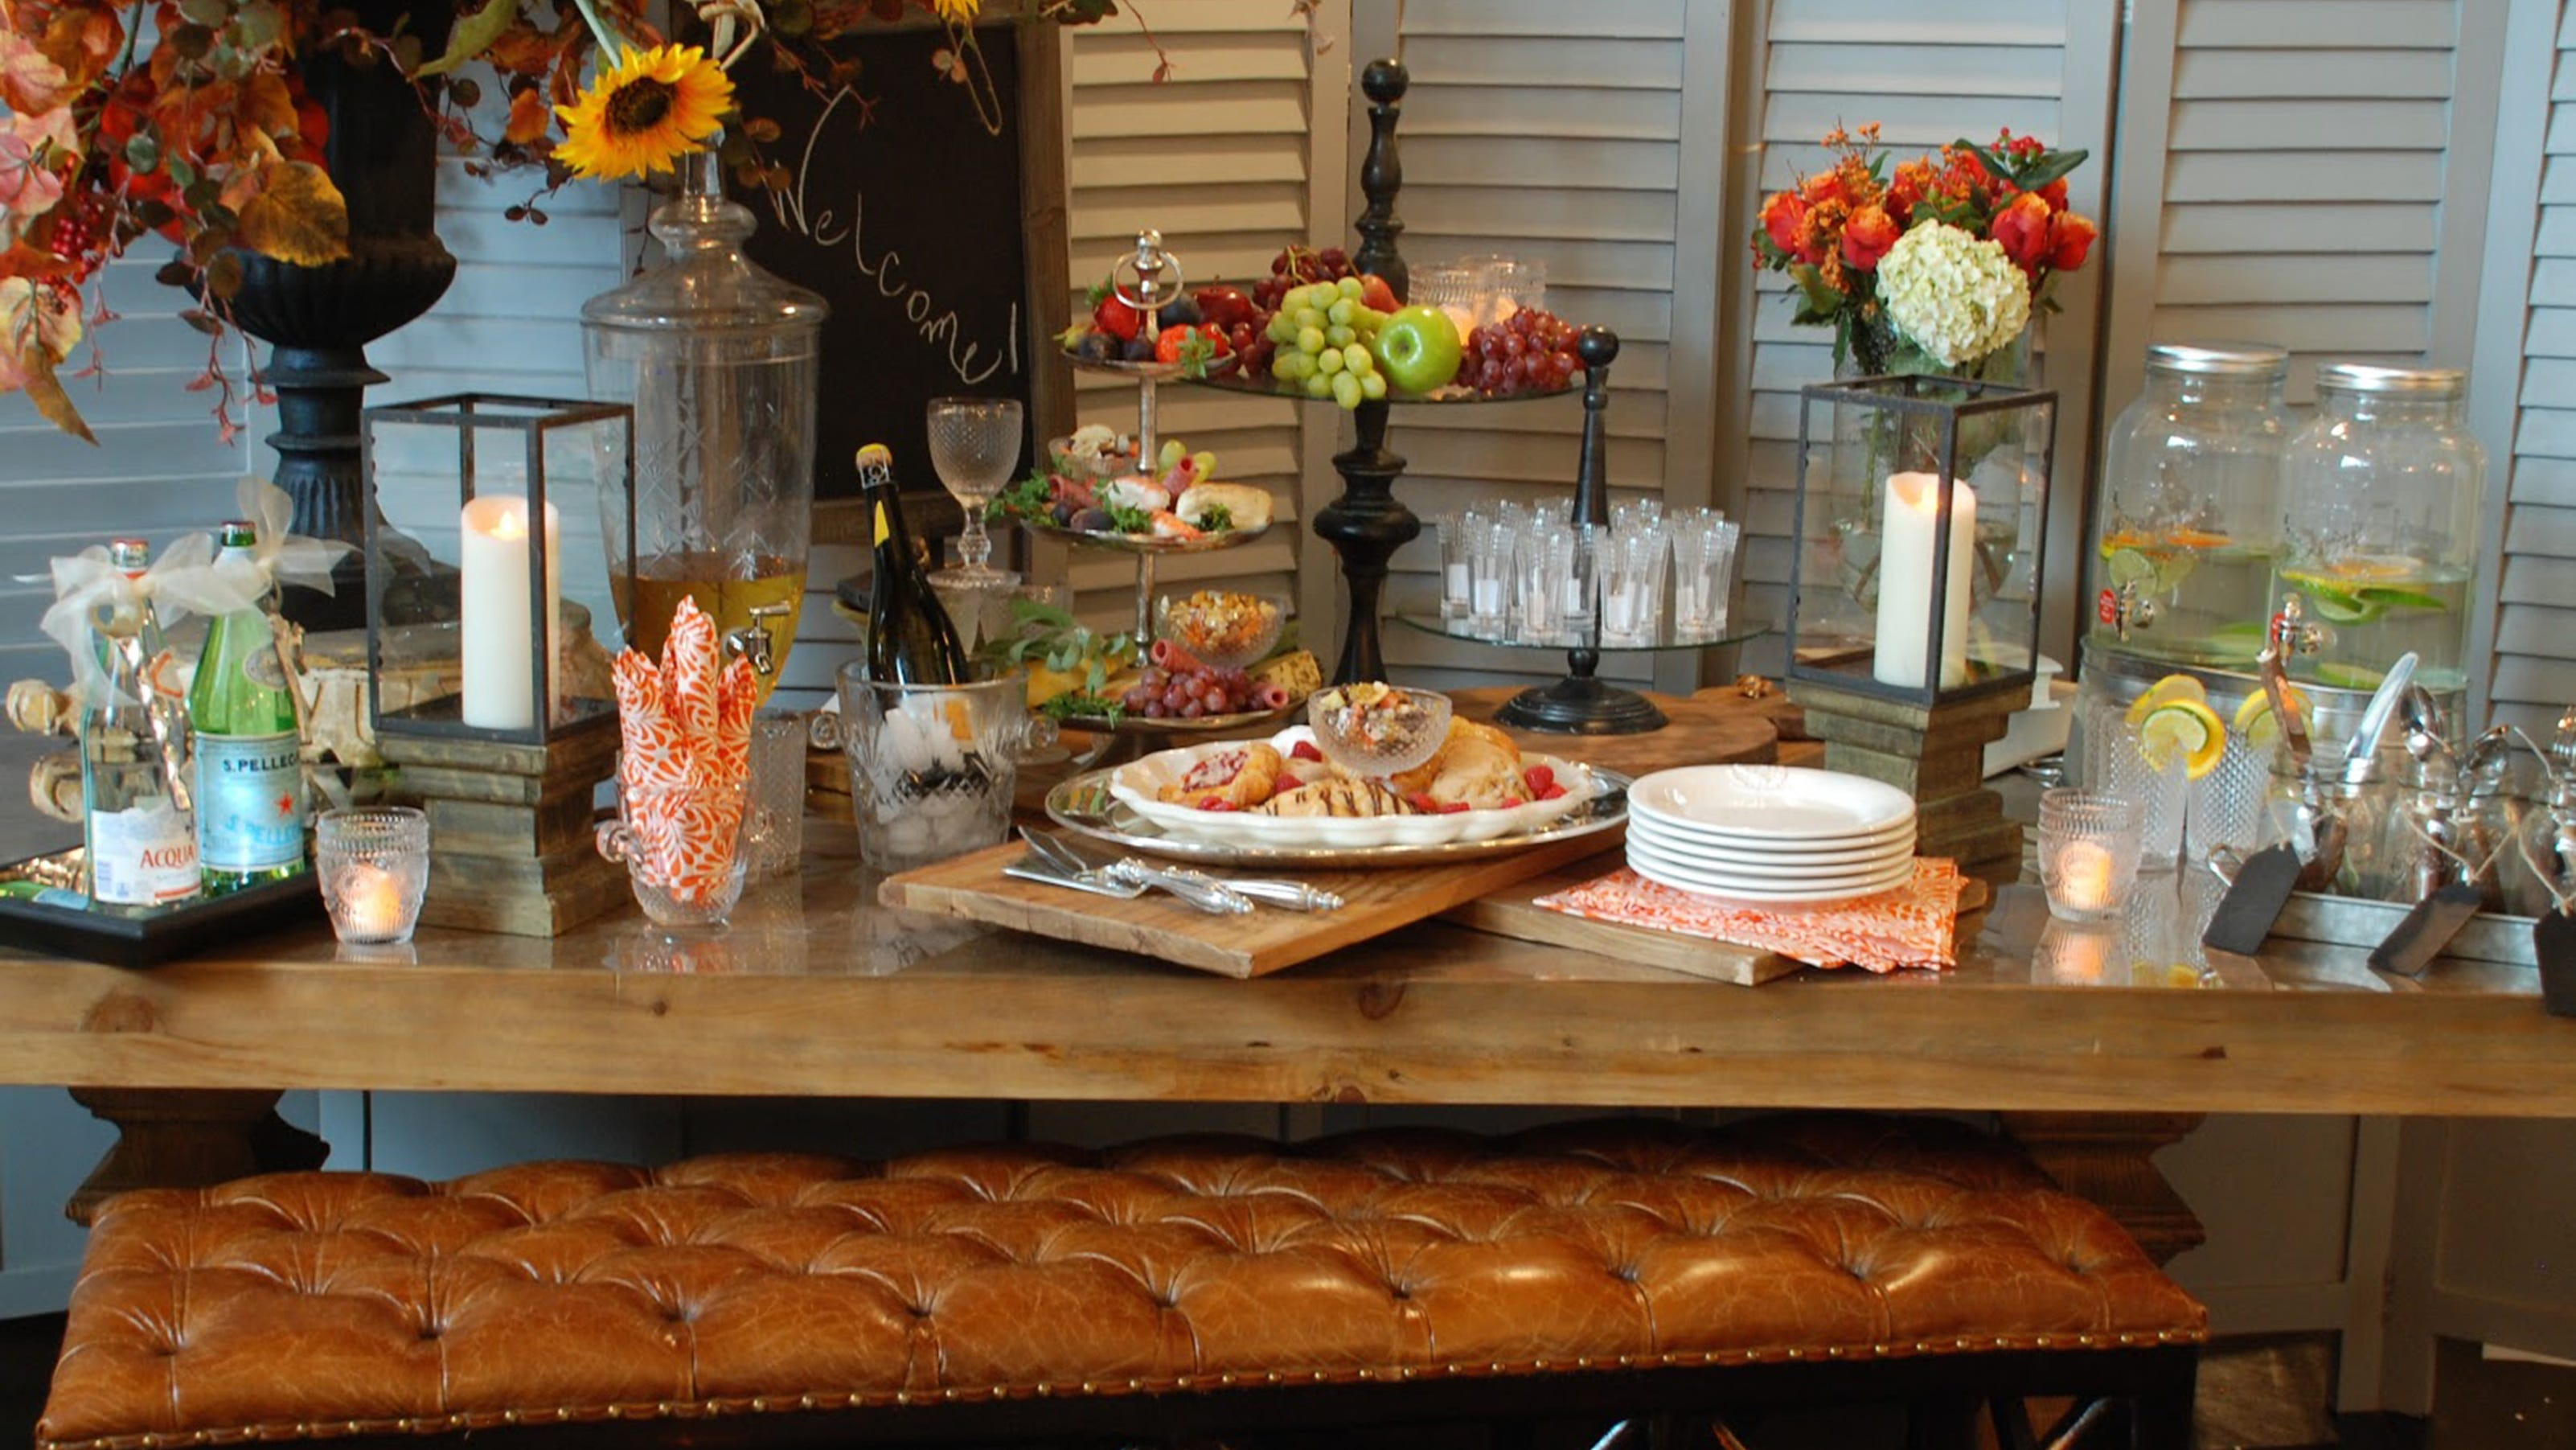 Style how to make a stunning appetizer display for Appetizers to make at home